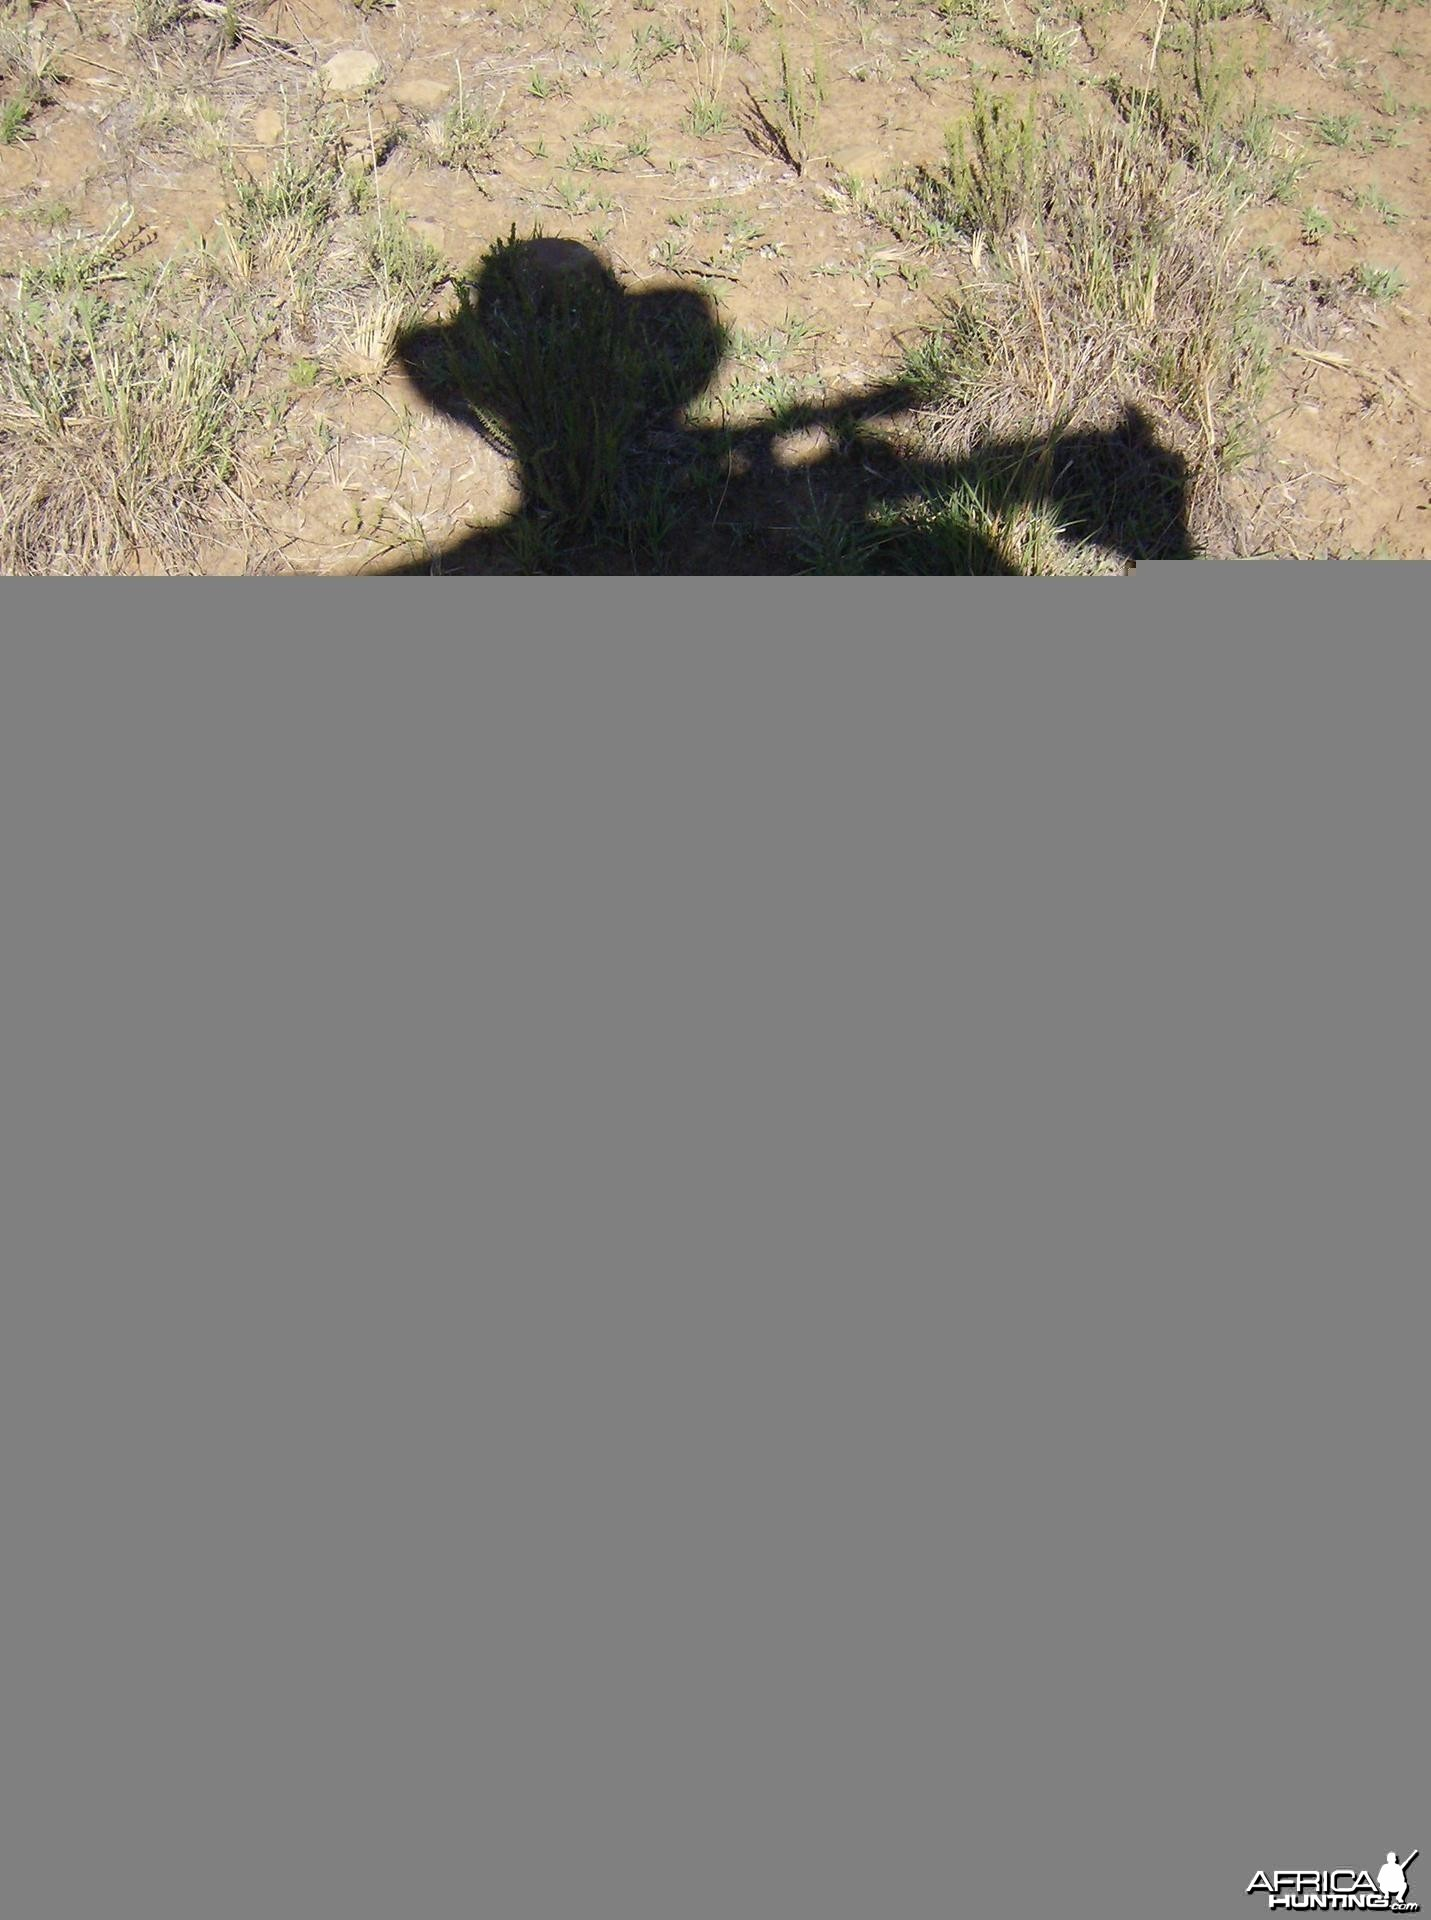 South Africa shadow